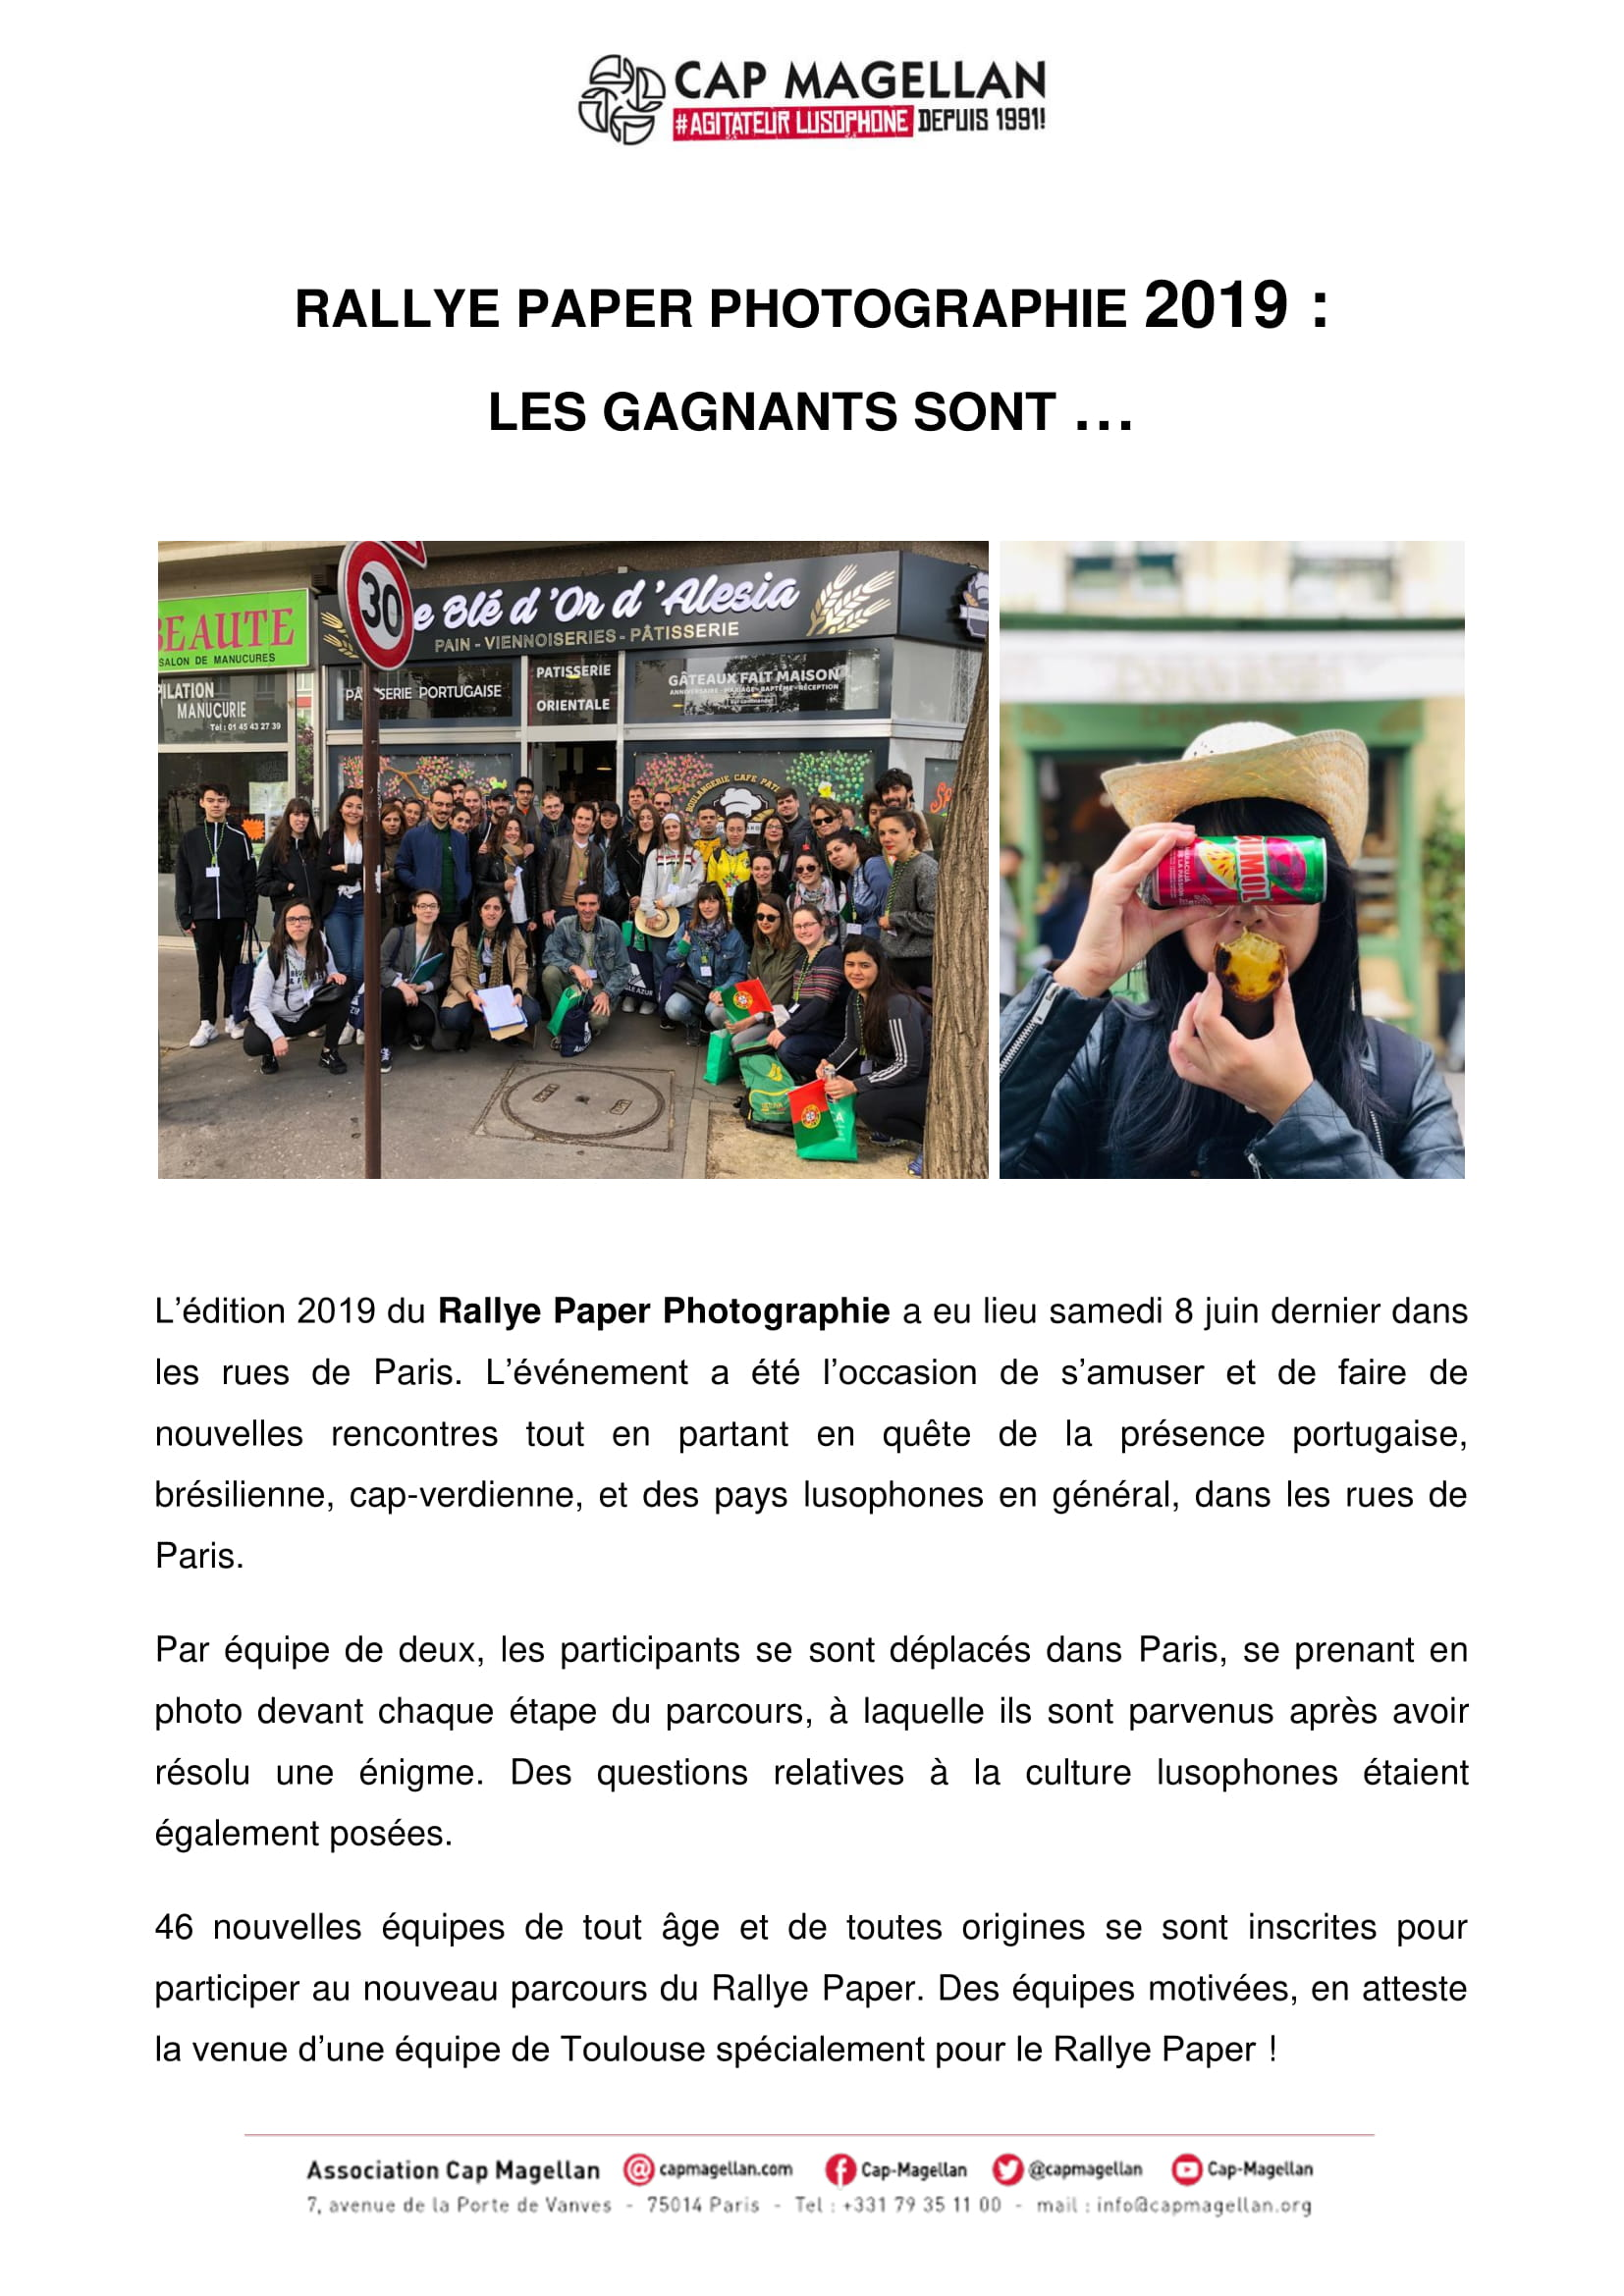 190614 - Rallye Paper Photographie 2019 gagnants-1